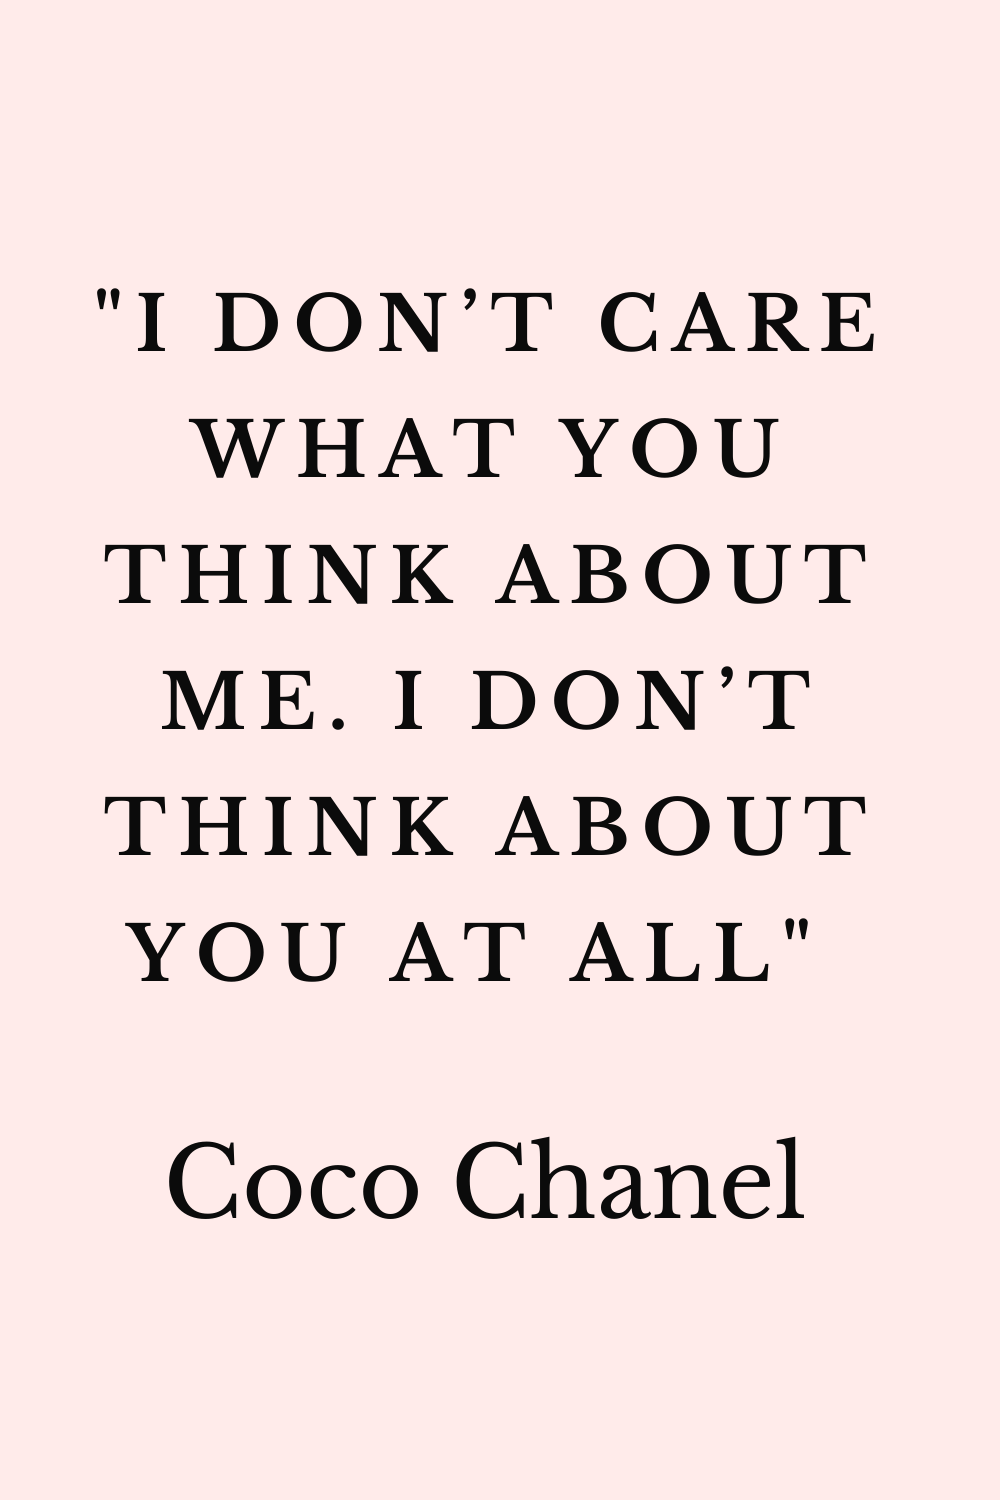 60 Coco Chanel quotes on Fashion, Beauty, and life.